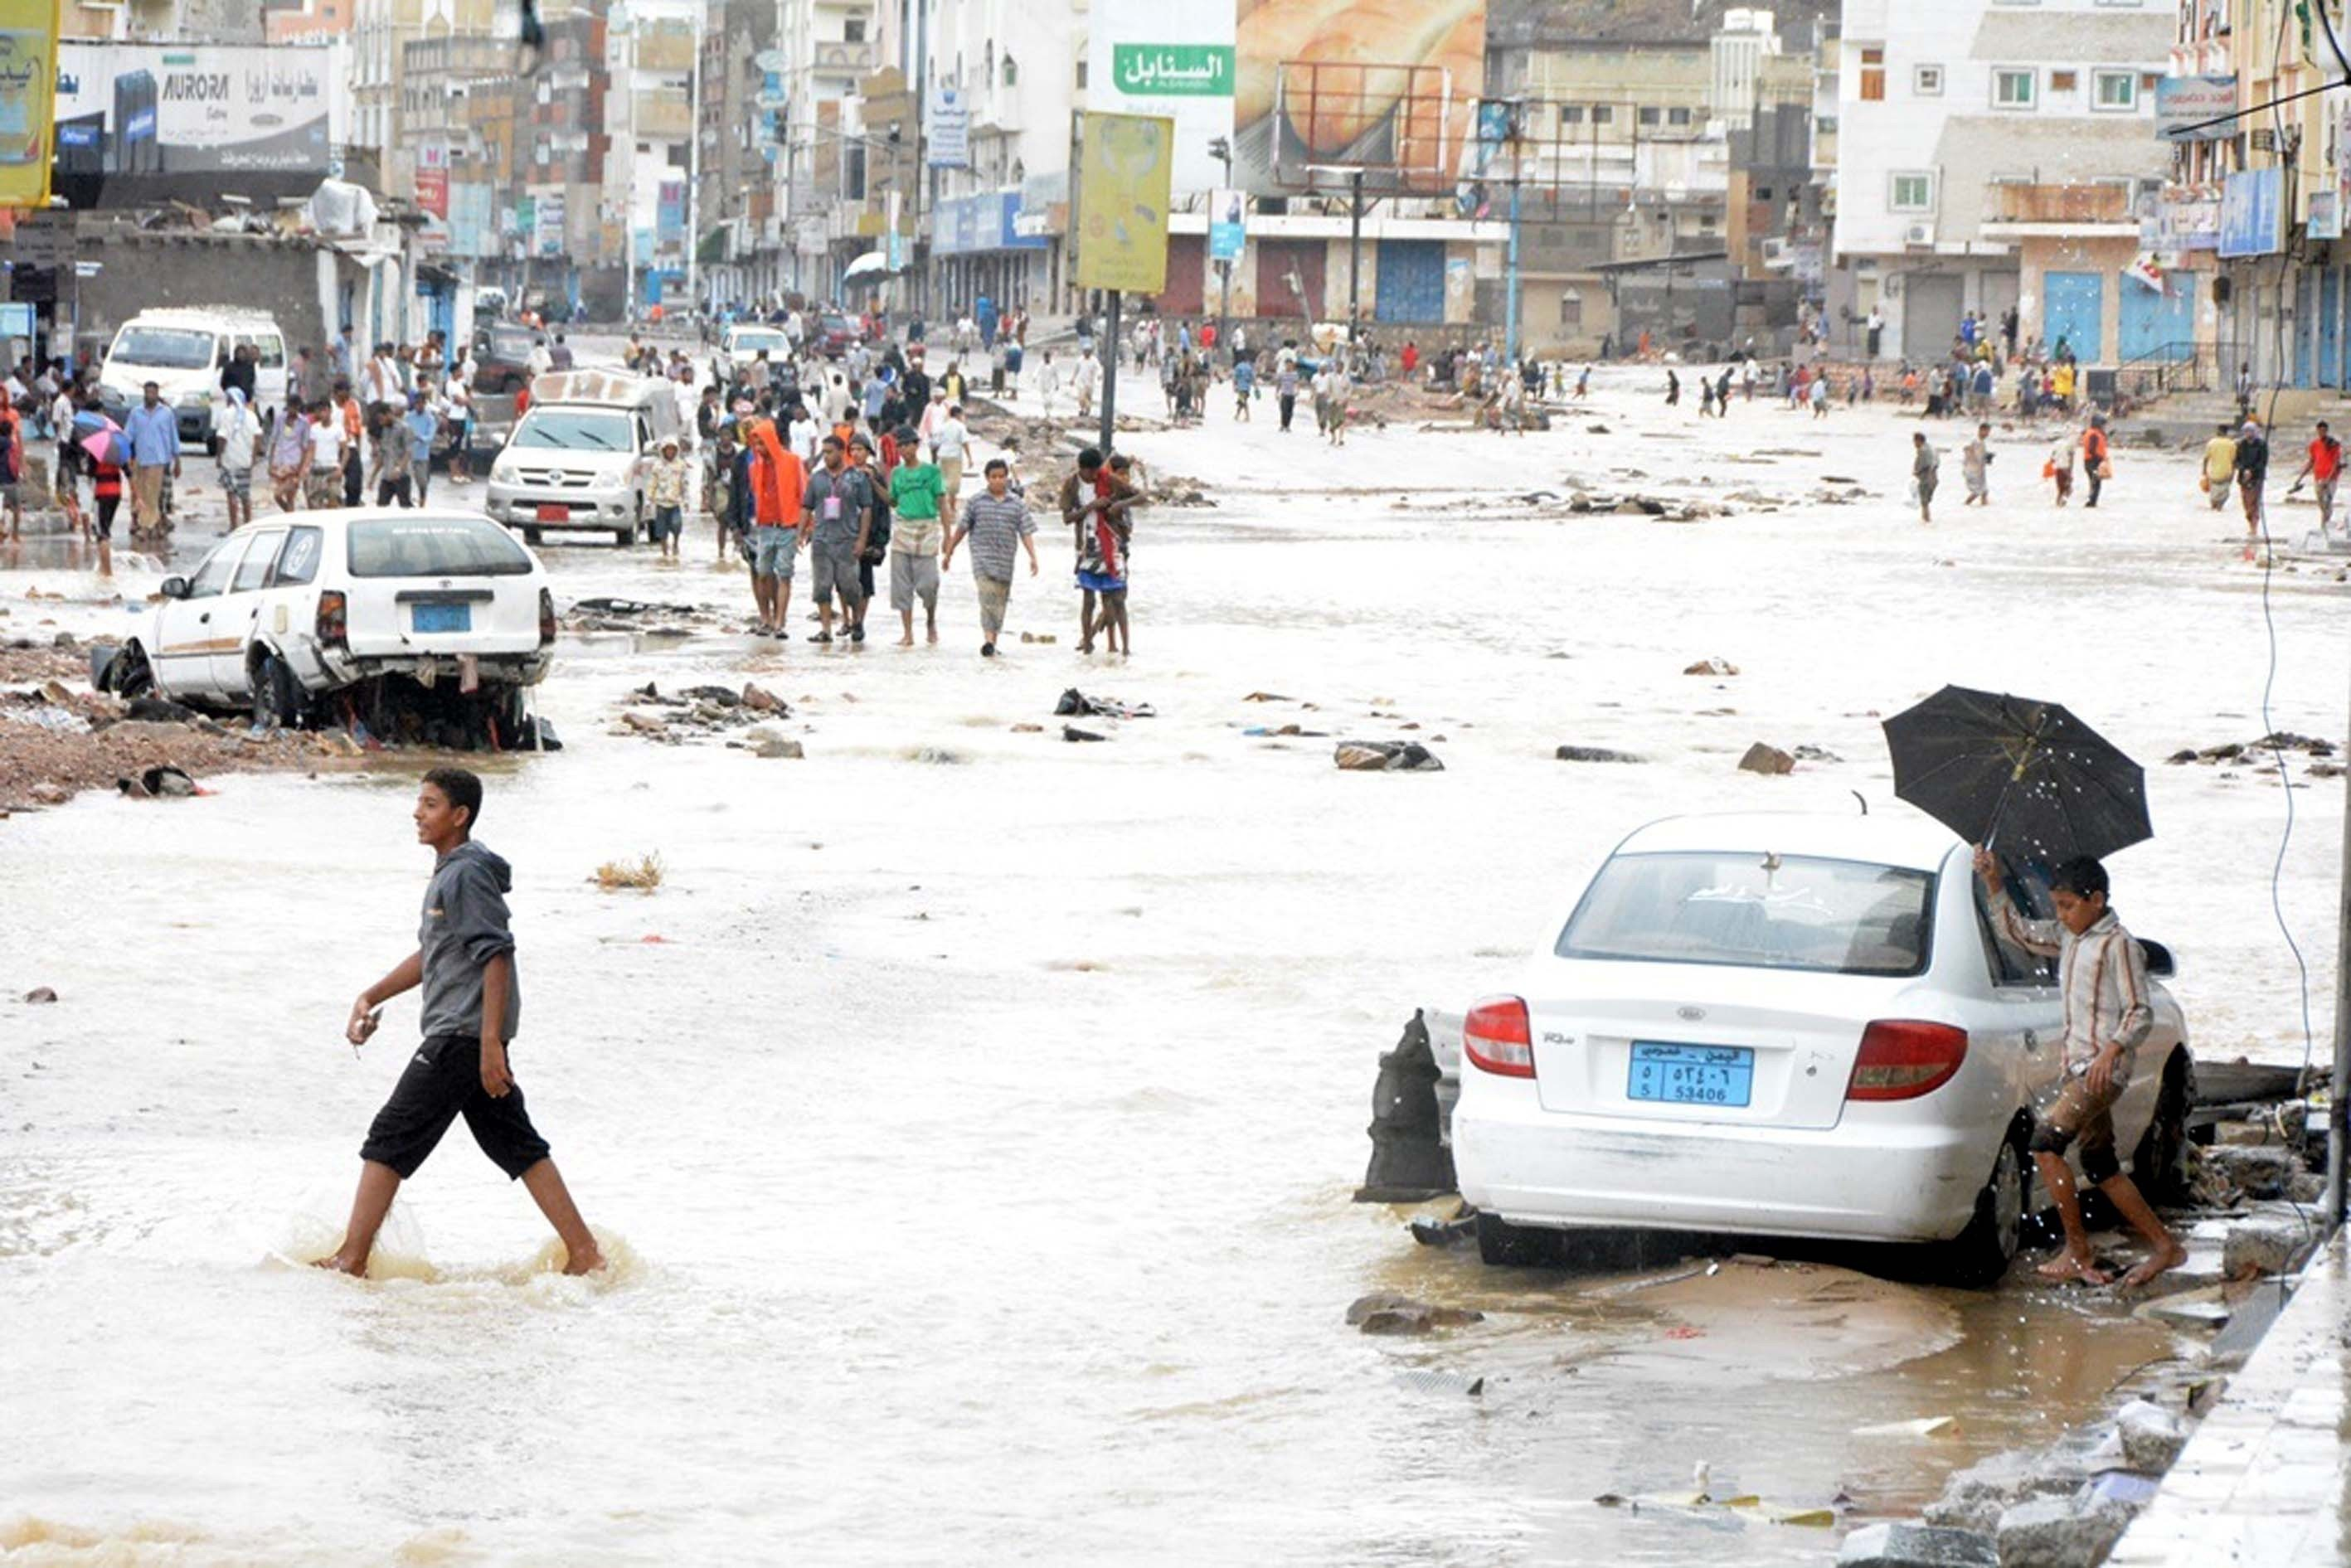 Yemenis walk past the vehicles damaged by wind and heavy rain-caused floodwaters, as a result of Cyclone Chapala on Nov. 03, 2015.